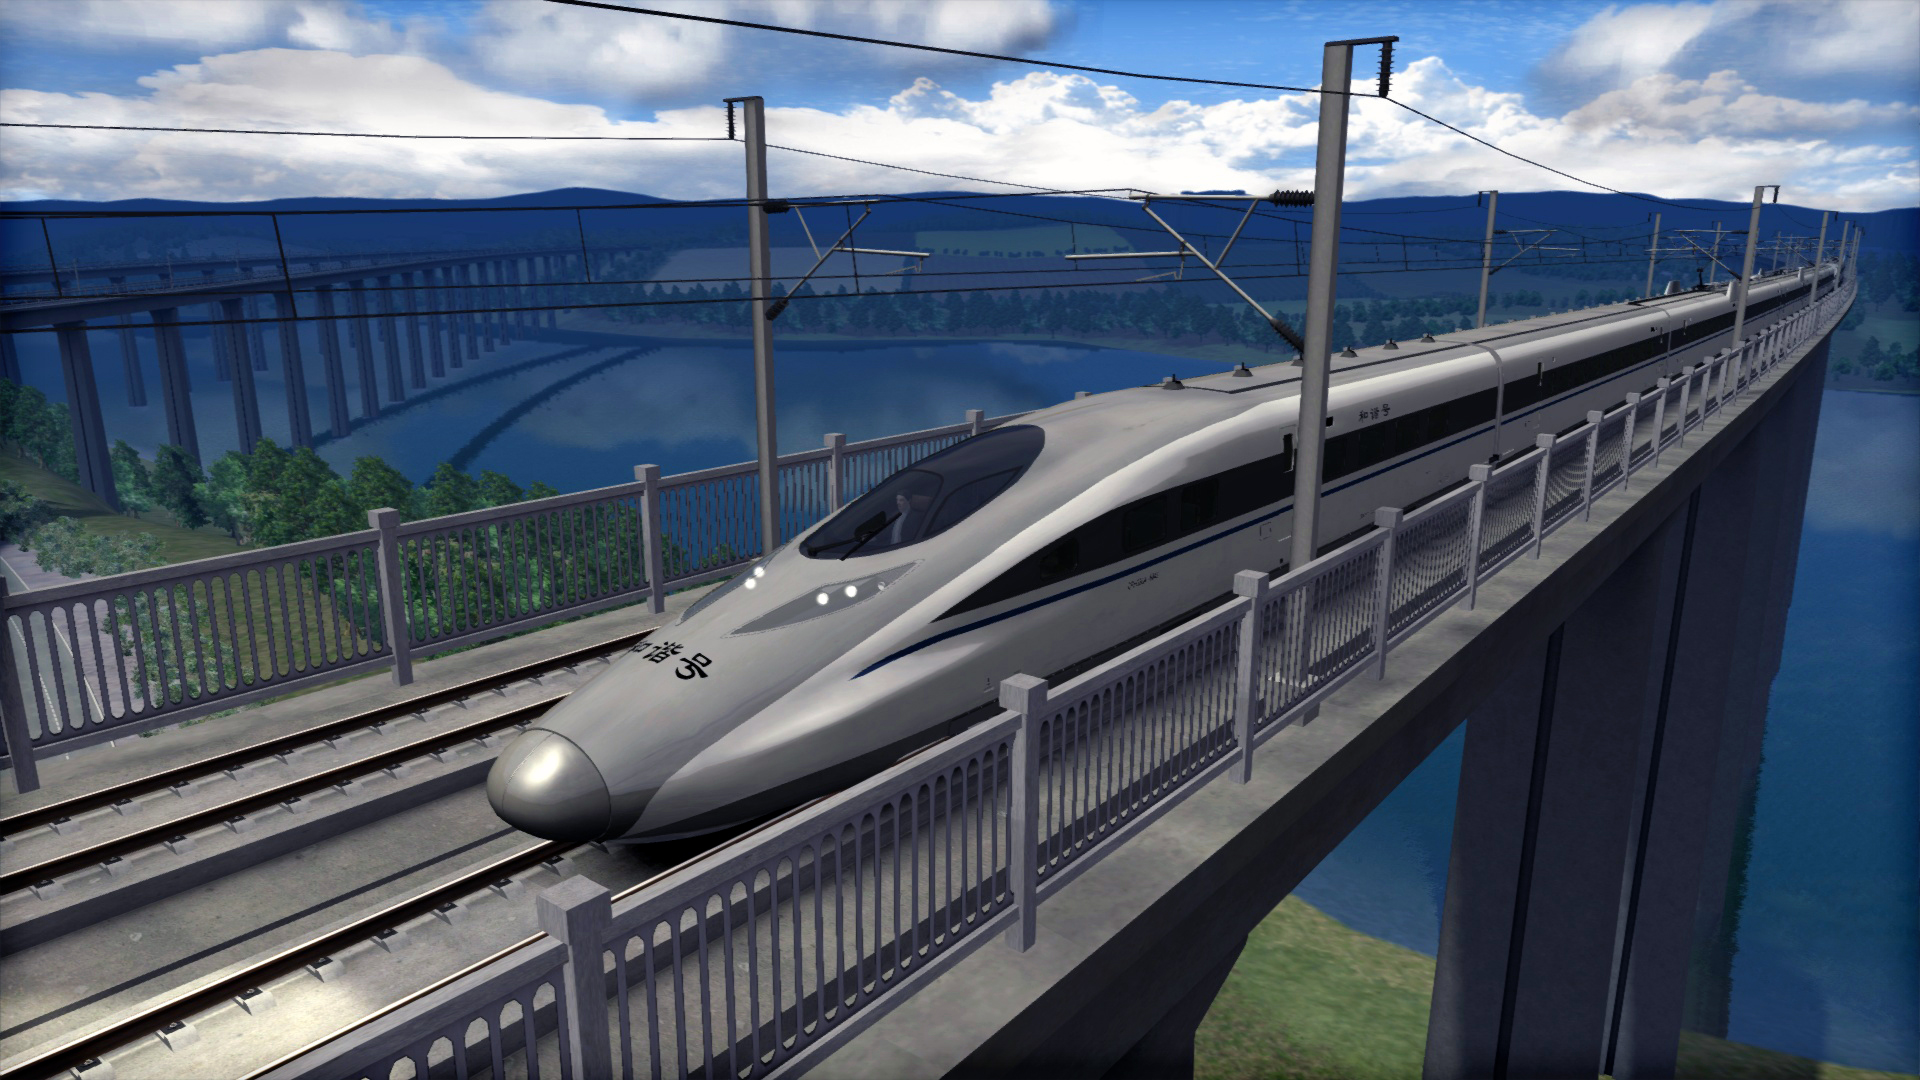 Train Simulator: CRH 380A High Speed Train Add-On